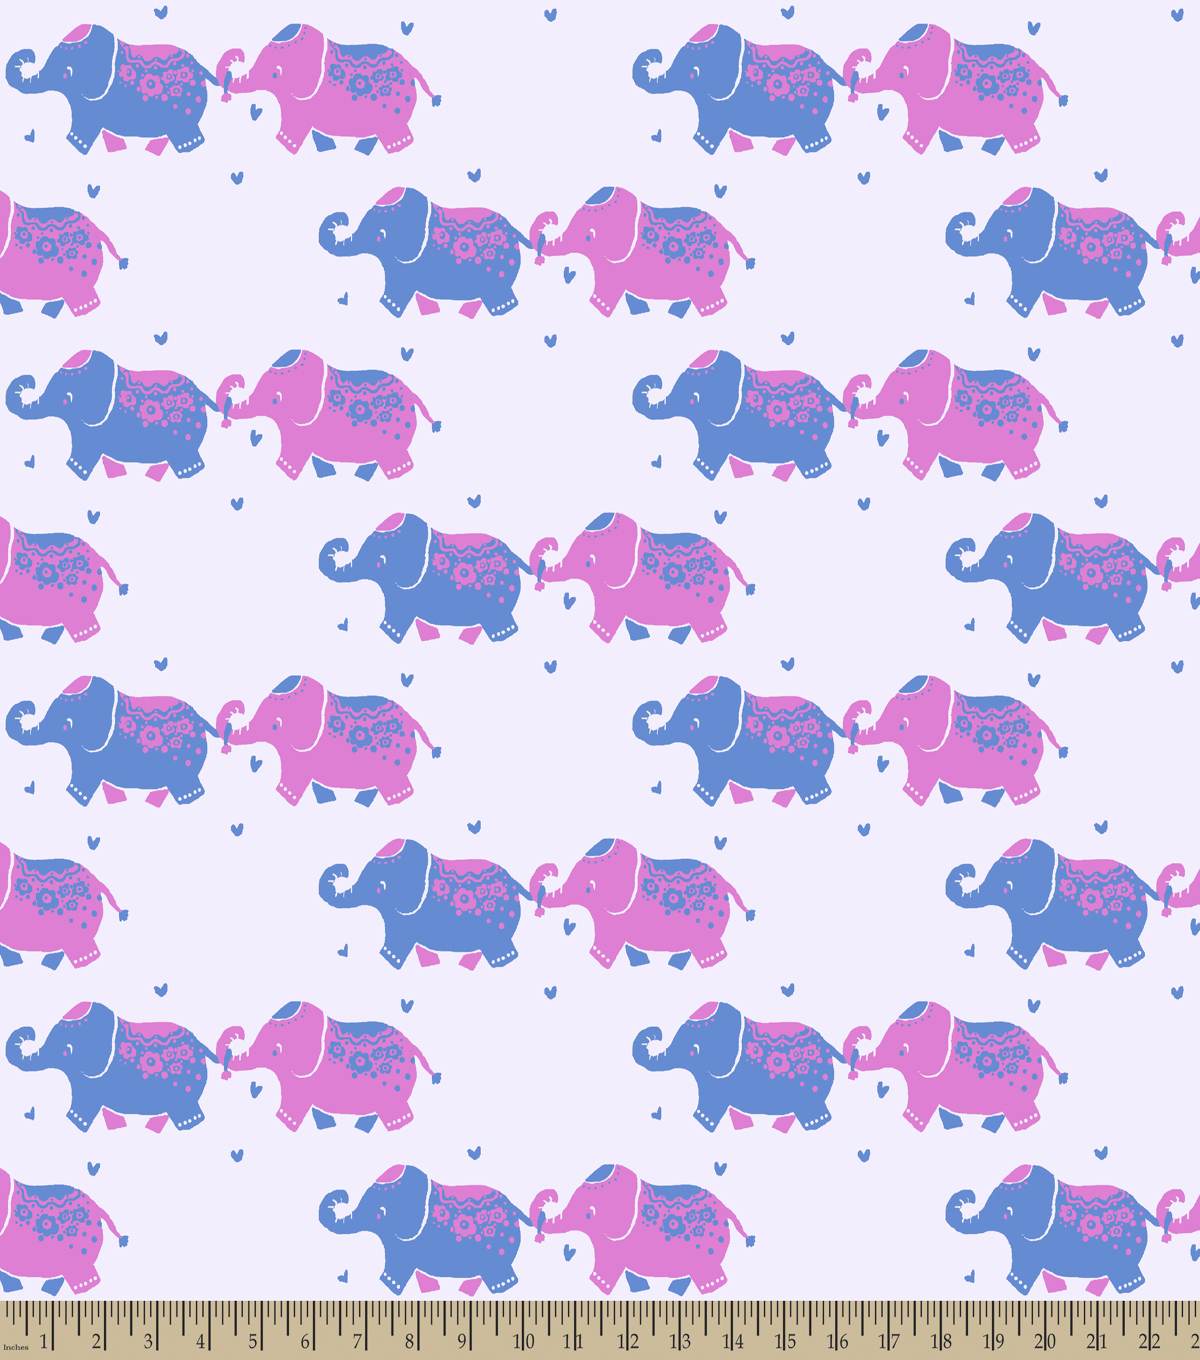 Pink & Purple Elephant Print Fabric